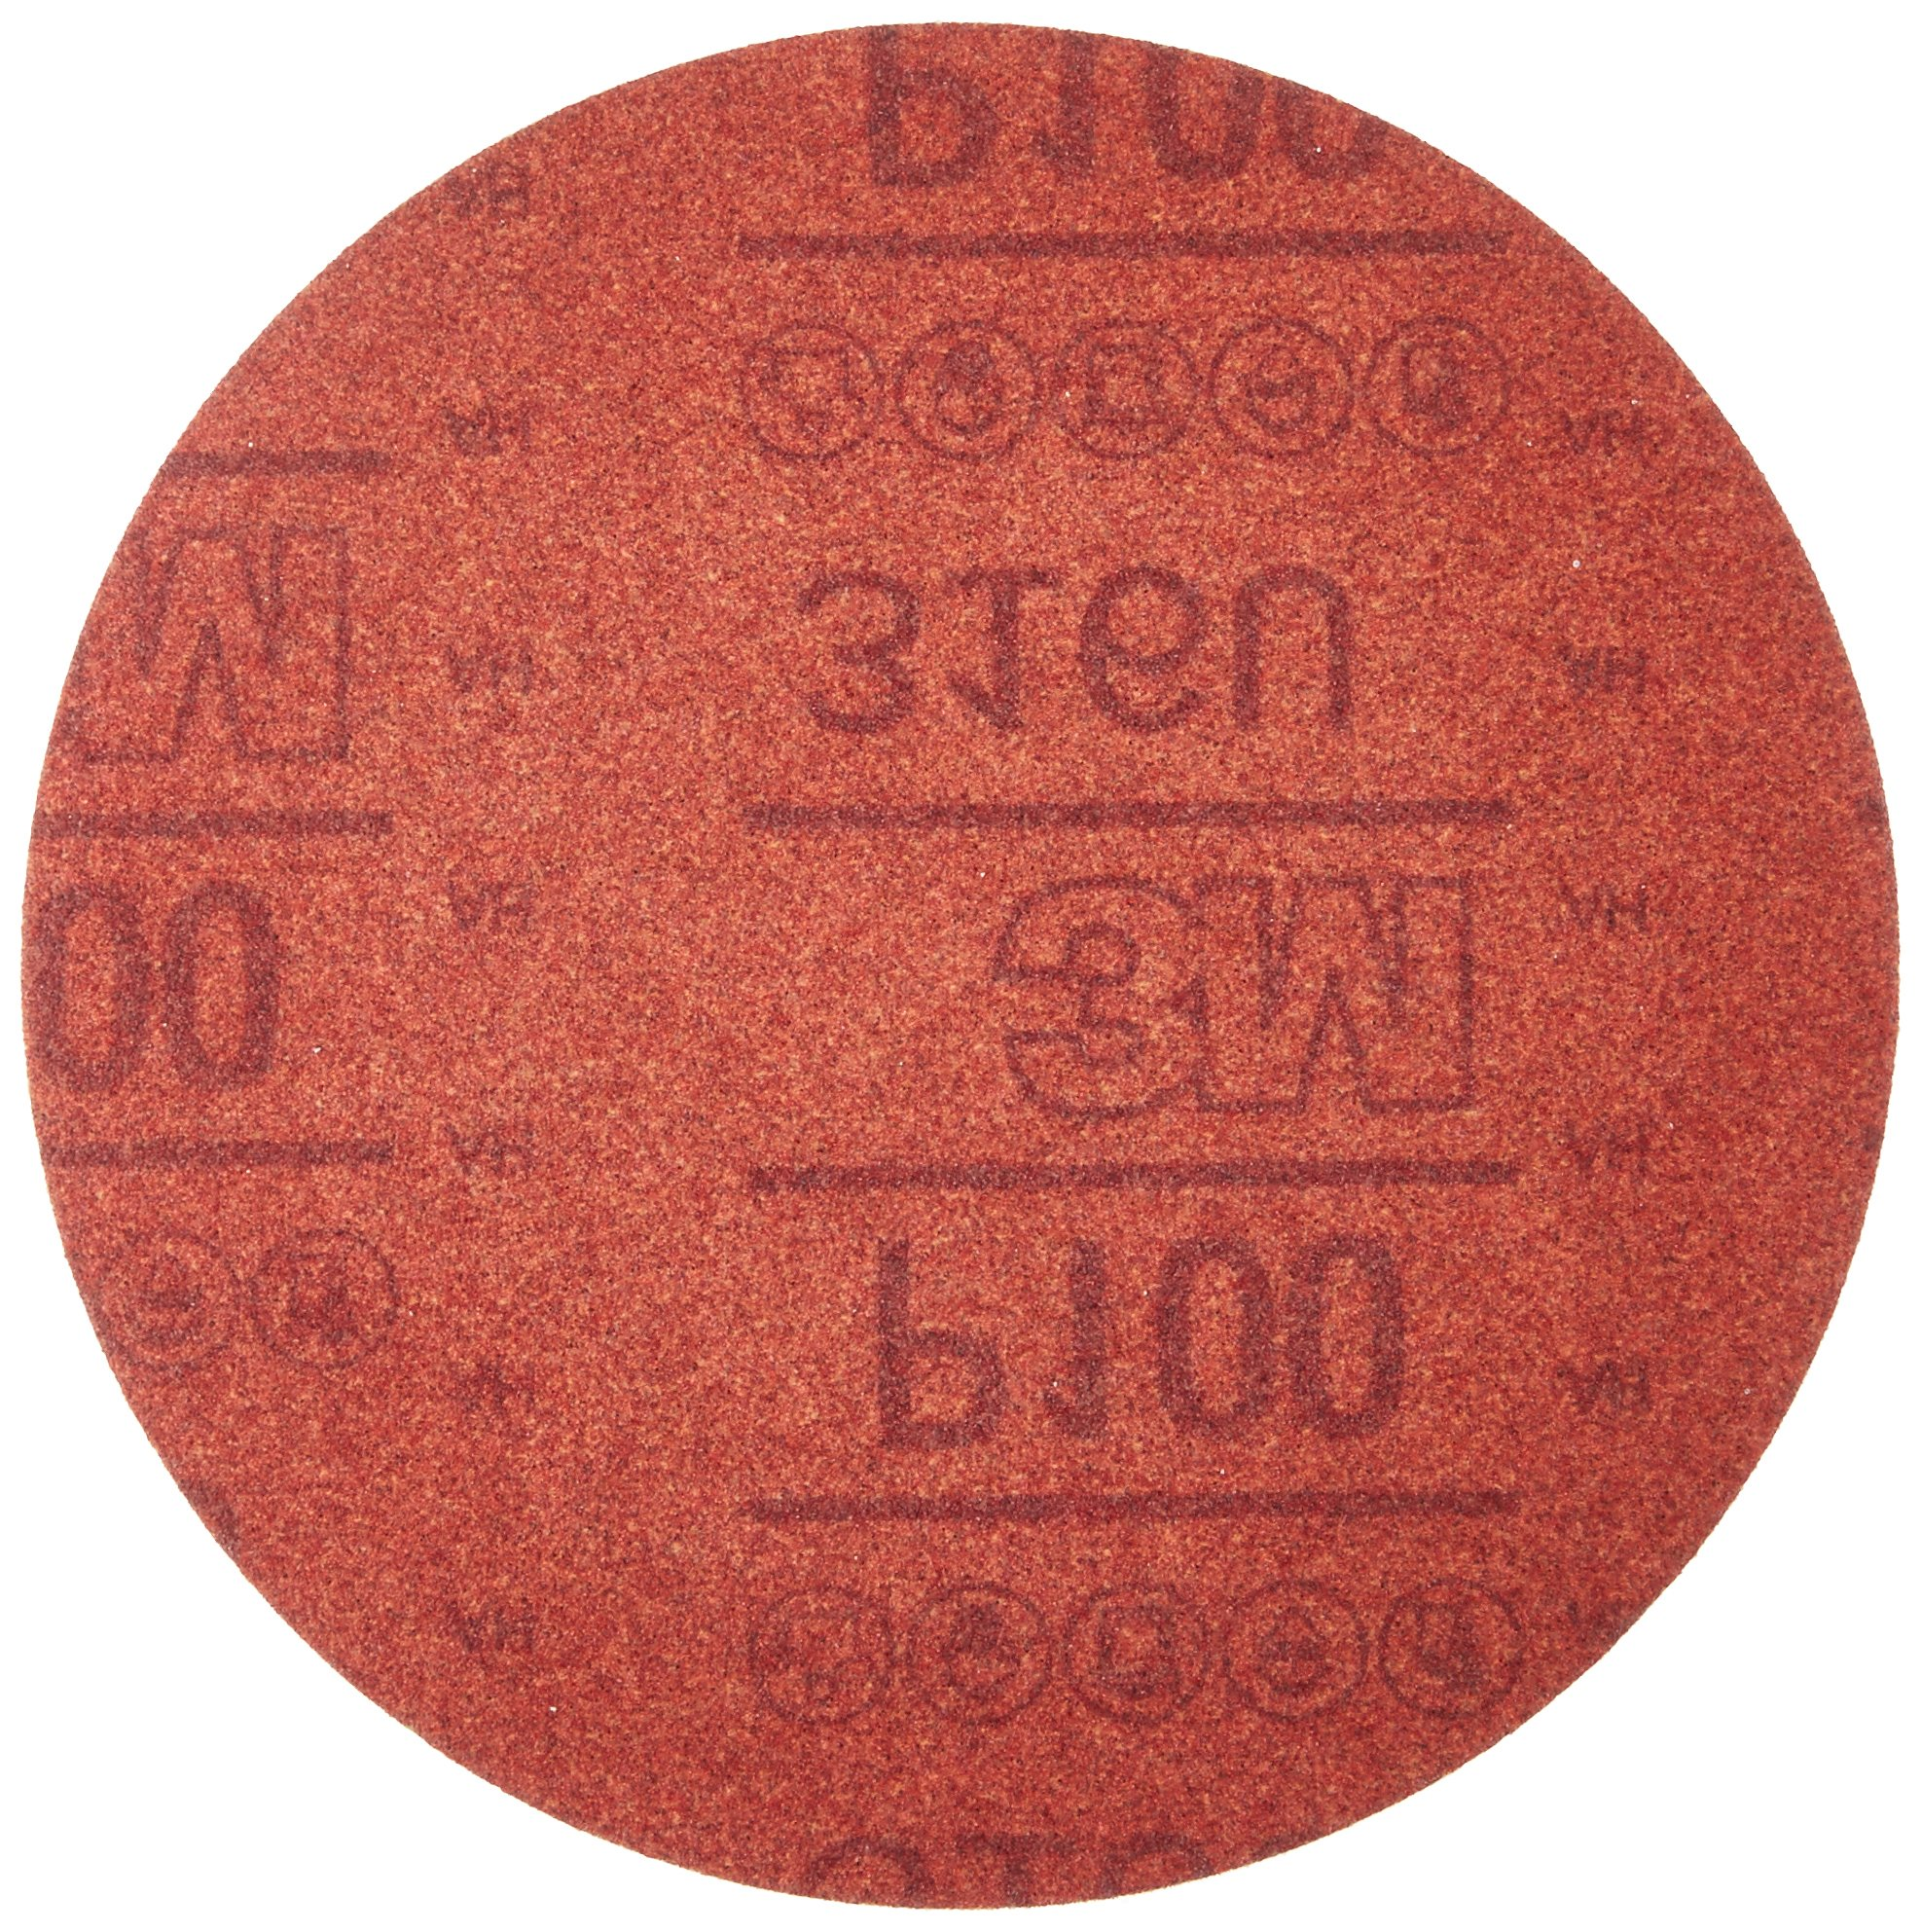 3M 01225 Hookit Red 6'' P100 Grit Abrasive Disc by 3M (Image #1)